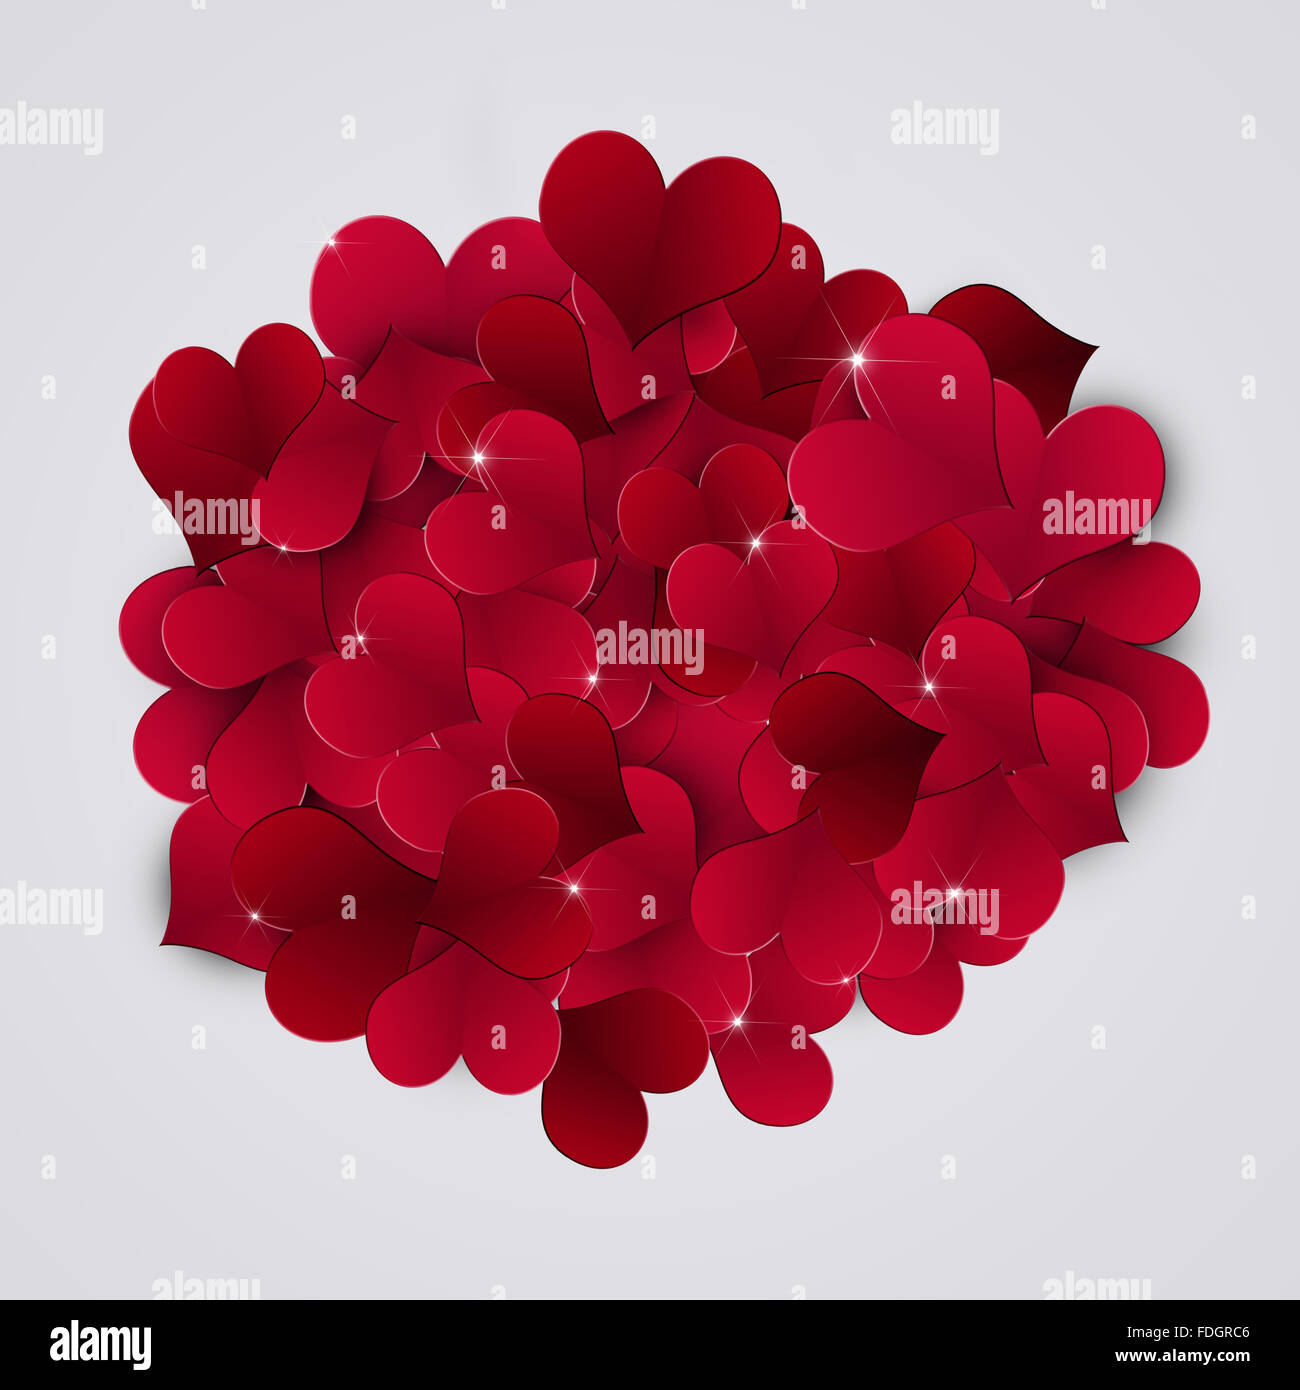 abstract heart valentine red background for gift cards - Stock Image